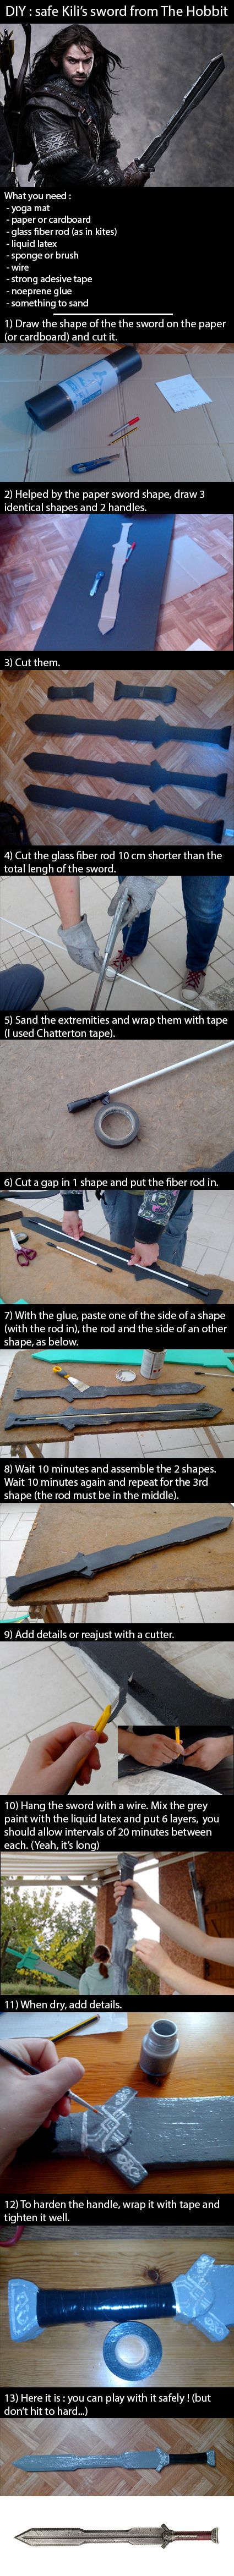 DIY : Kili's sword from The Hobbit by MojulineLC.deviantart.com Easy tutorial !